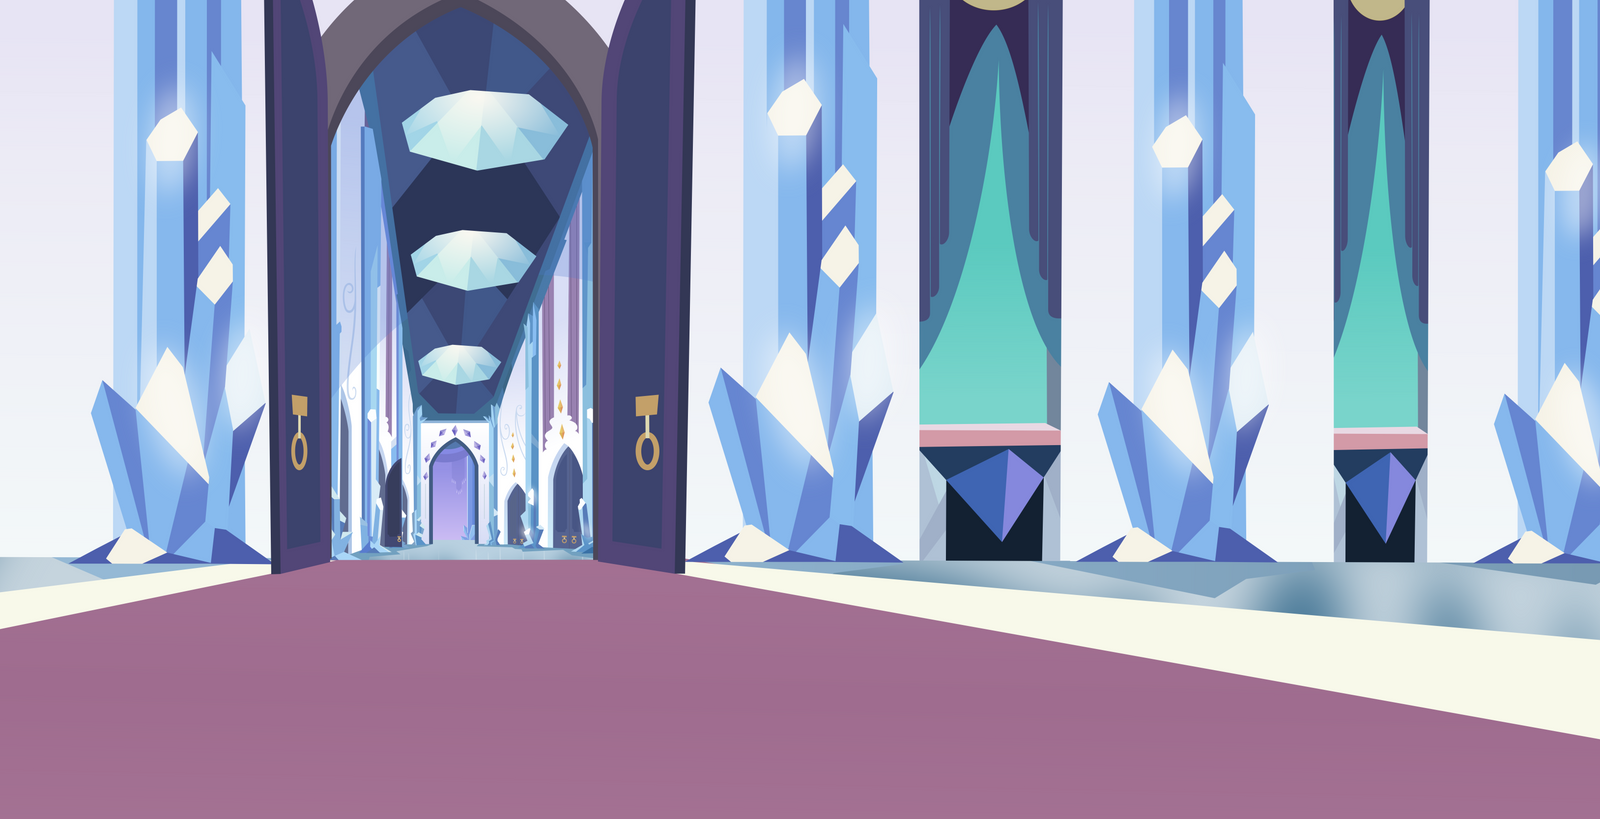 Crystal Empire Throne Room 2 By Comeha On Deviantart